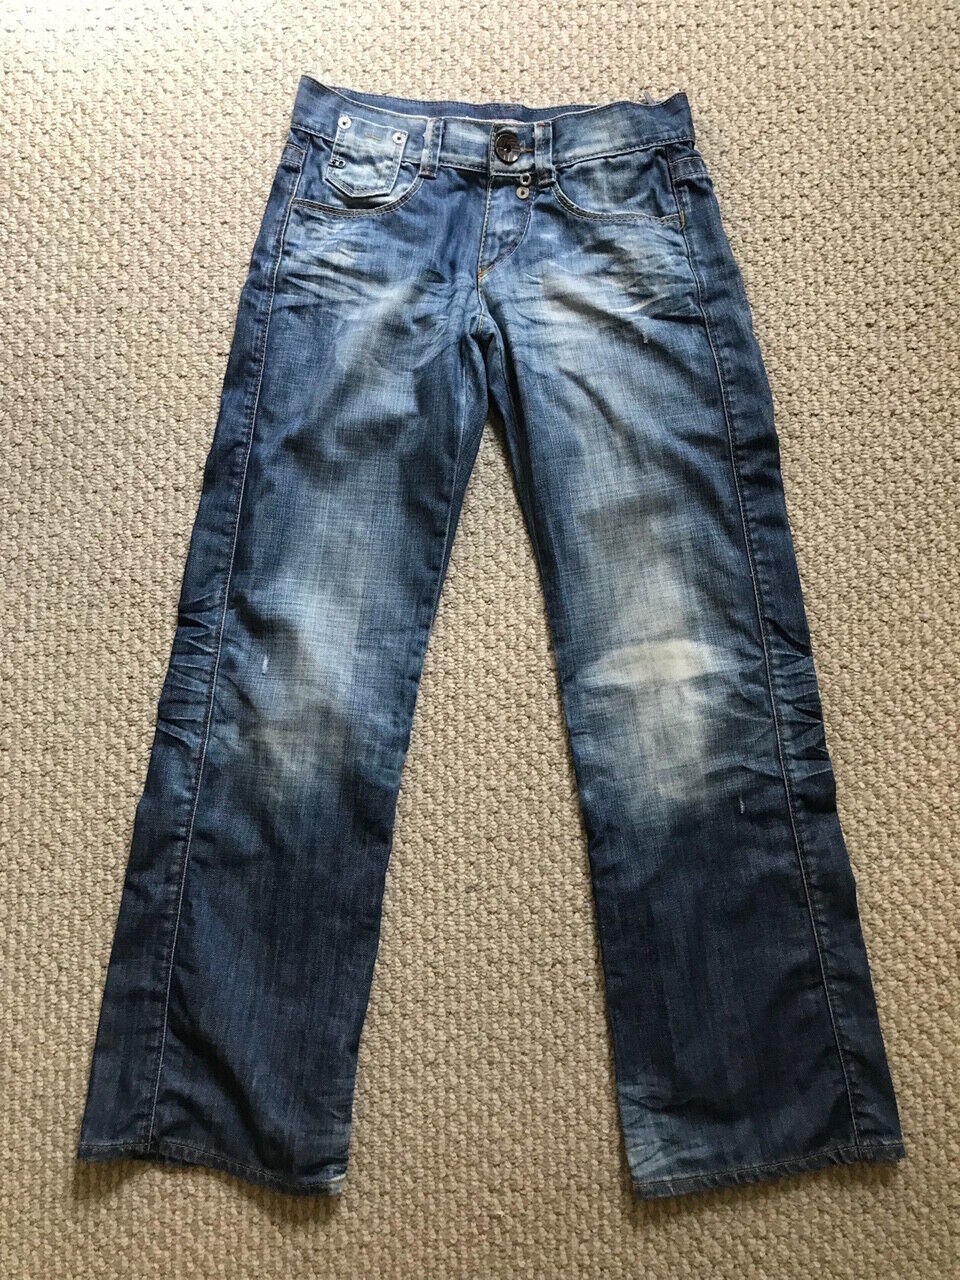 Miss Sixty  Straight Leg Medium bluee Wash Jeans Buttons Size - 25